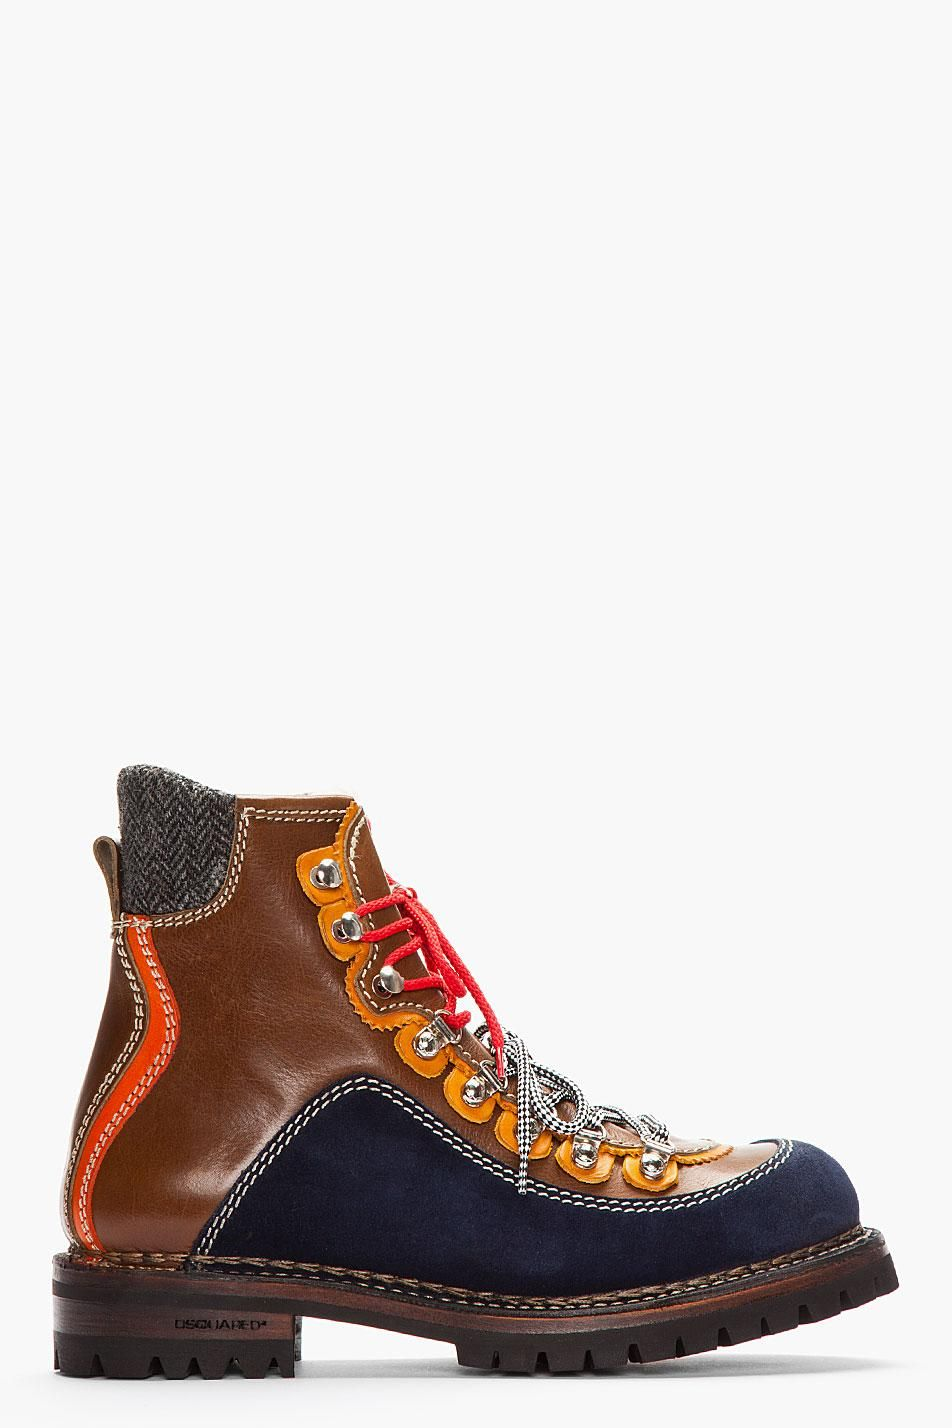 DSquared2 Brown Leather  Suede Patchworked Military Hiking Boots  mens  boots  mens hiking boots